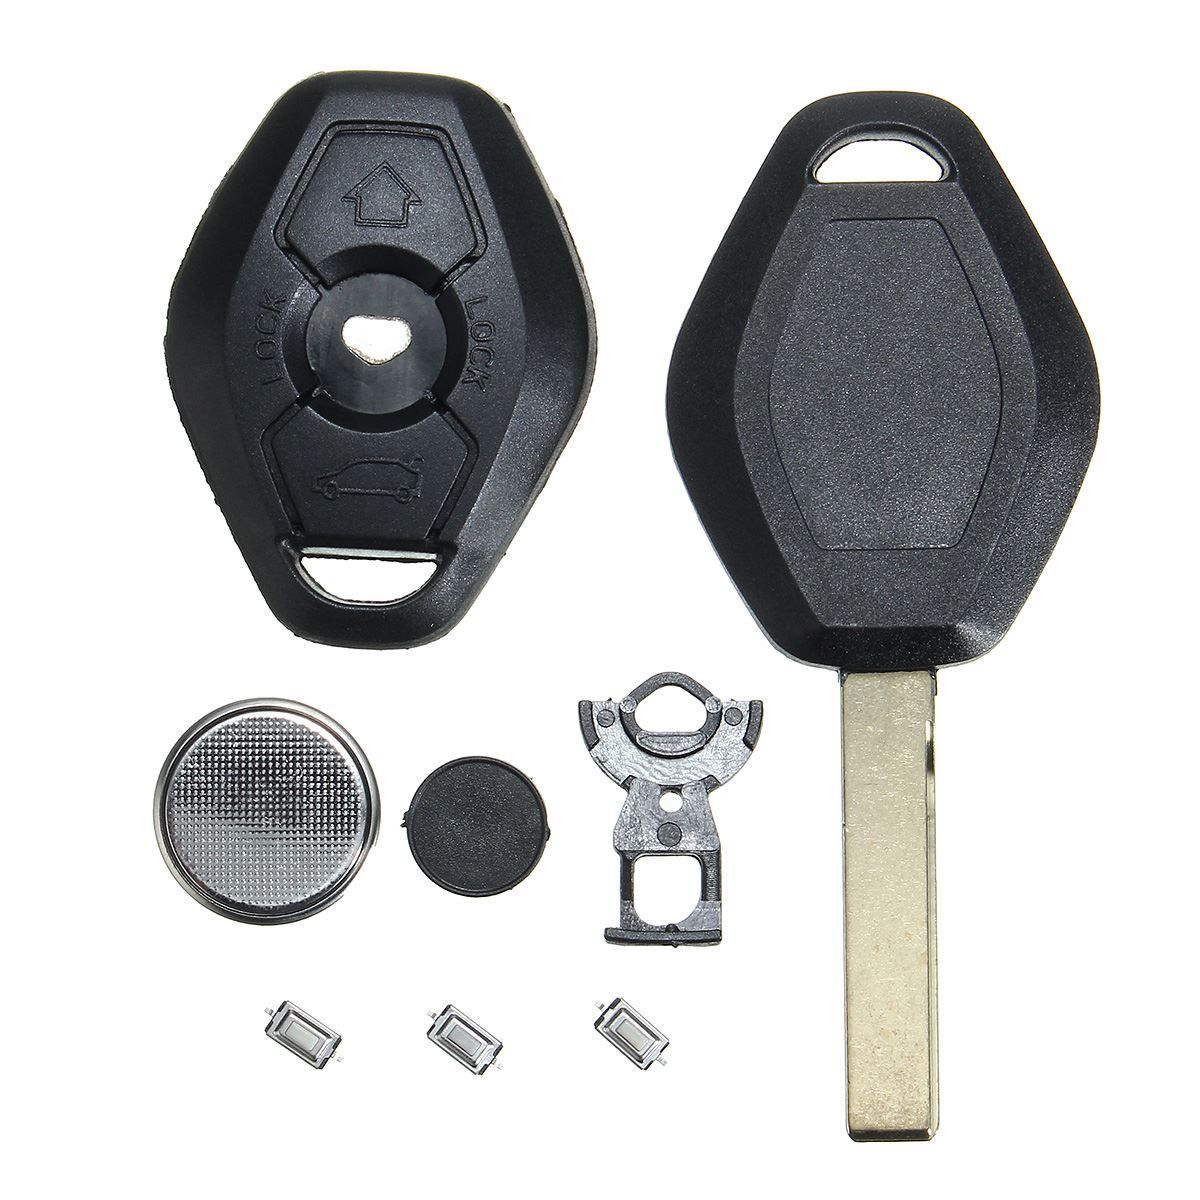 3 Buttons Remote Key Fob Case Micro Switch Battery Repair Kit For